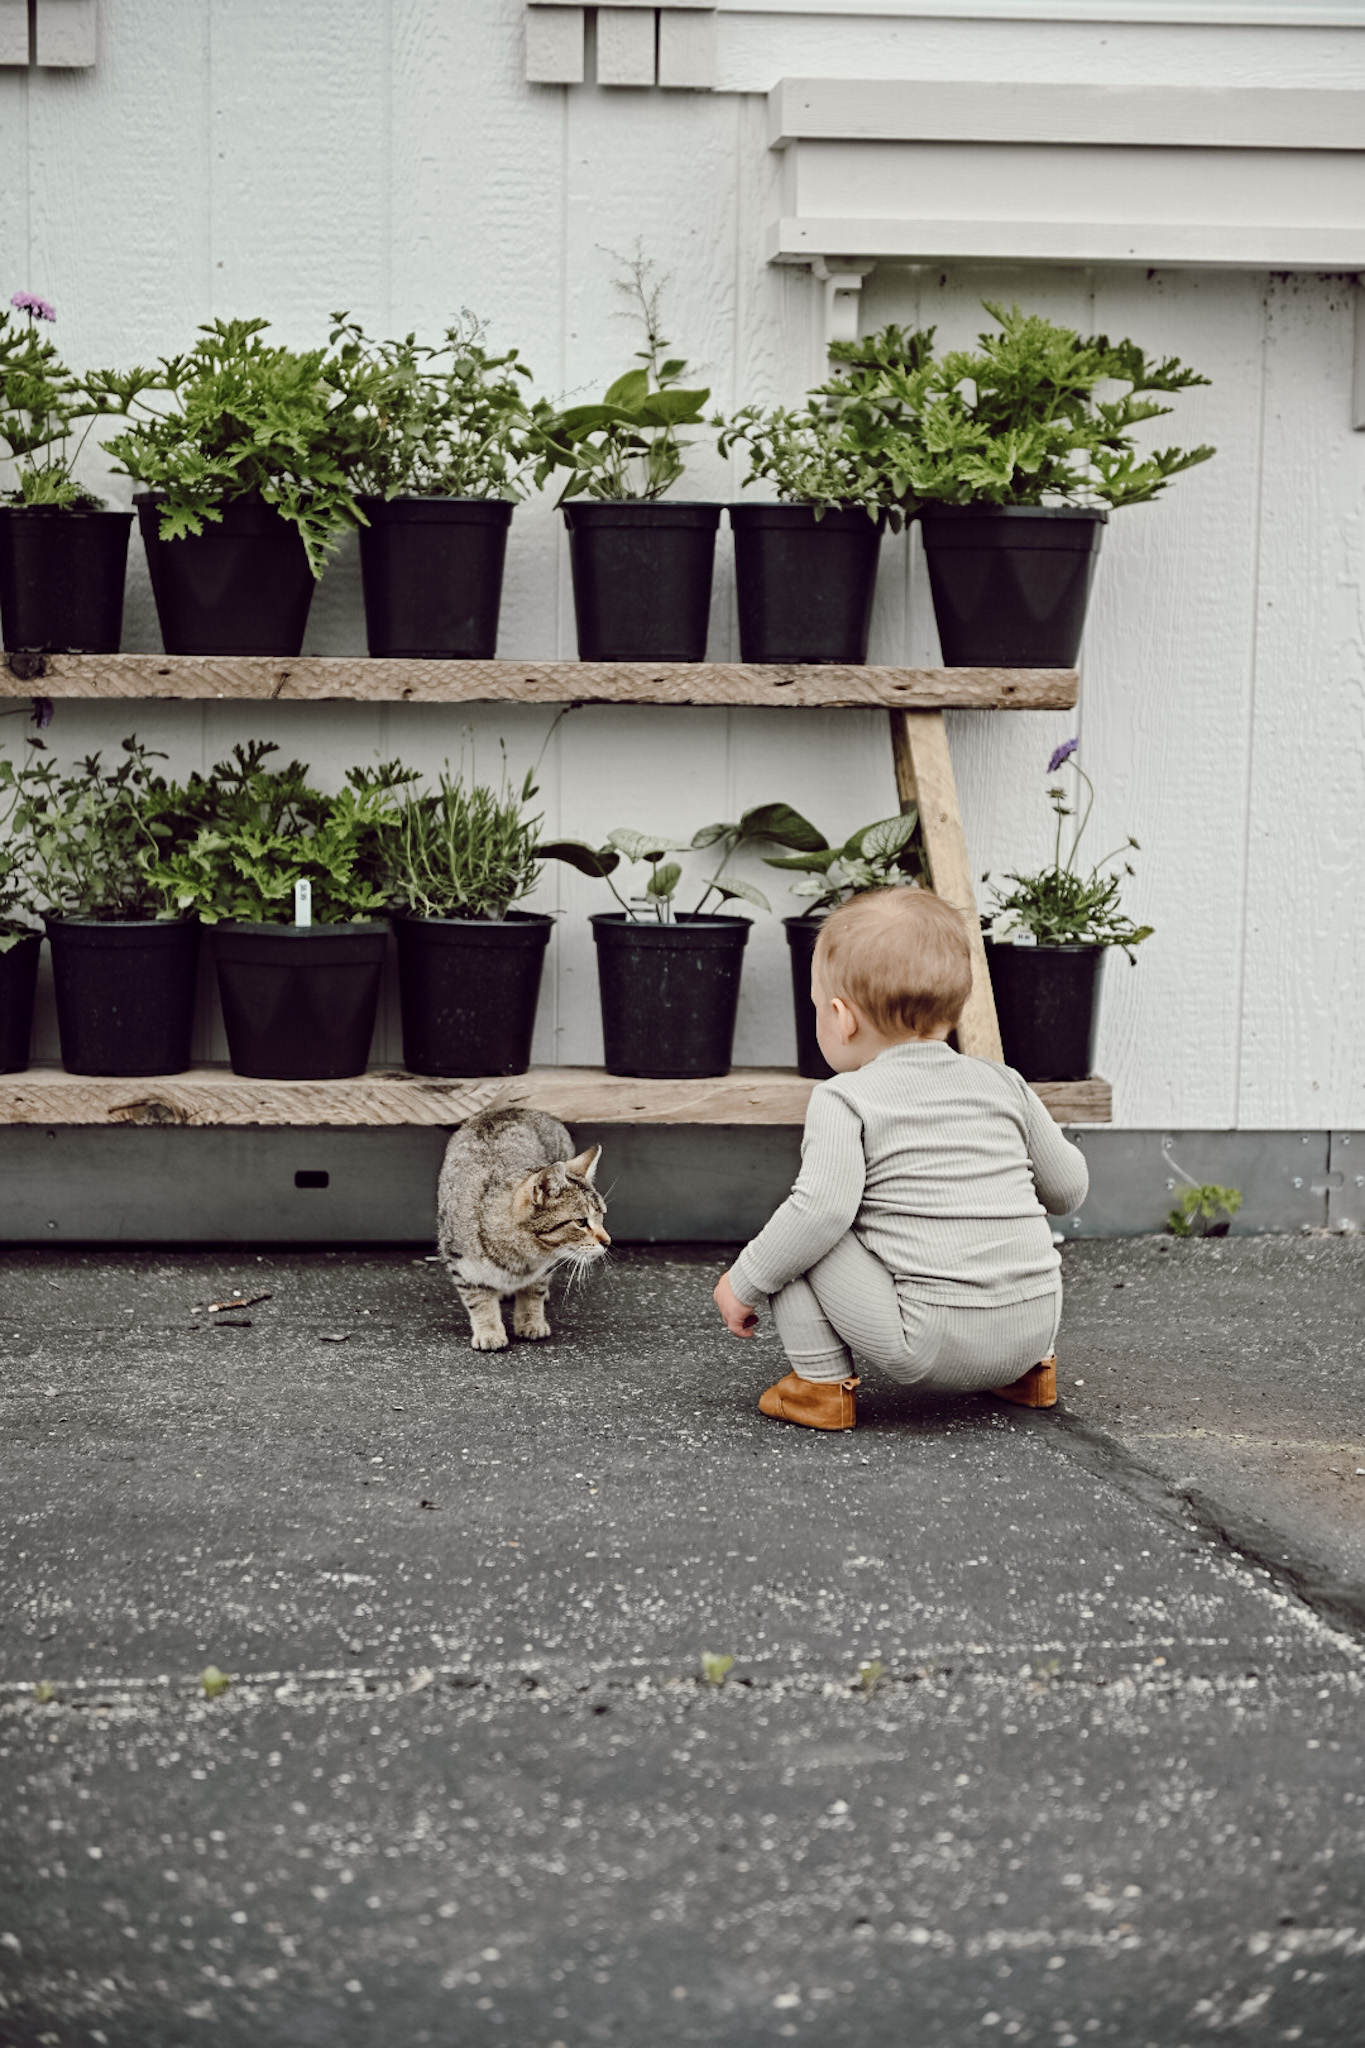 little boy with cat infant of greenhouse with plants